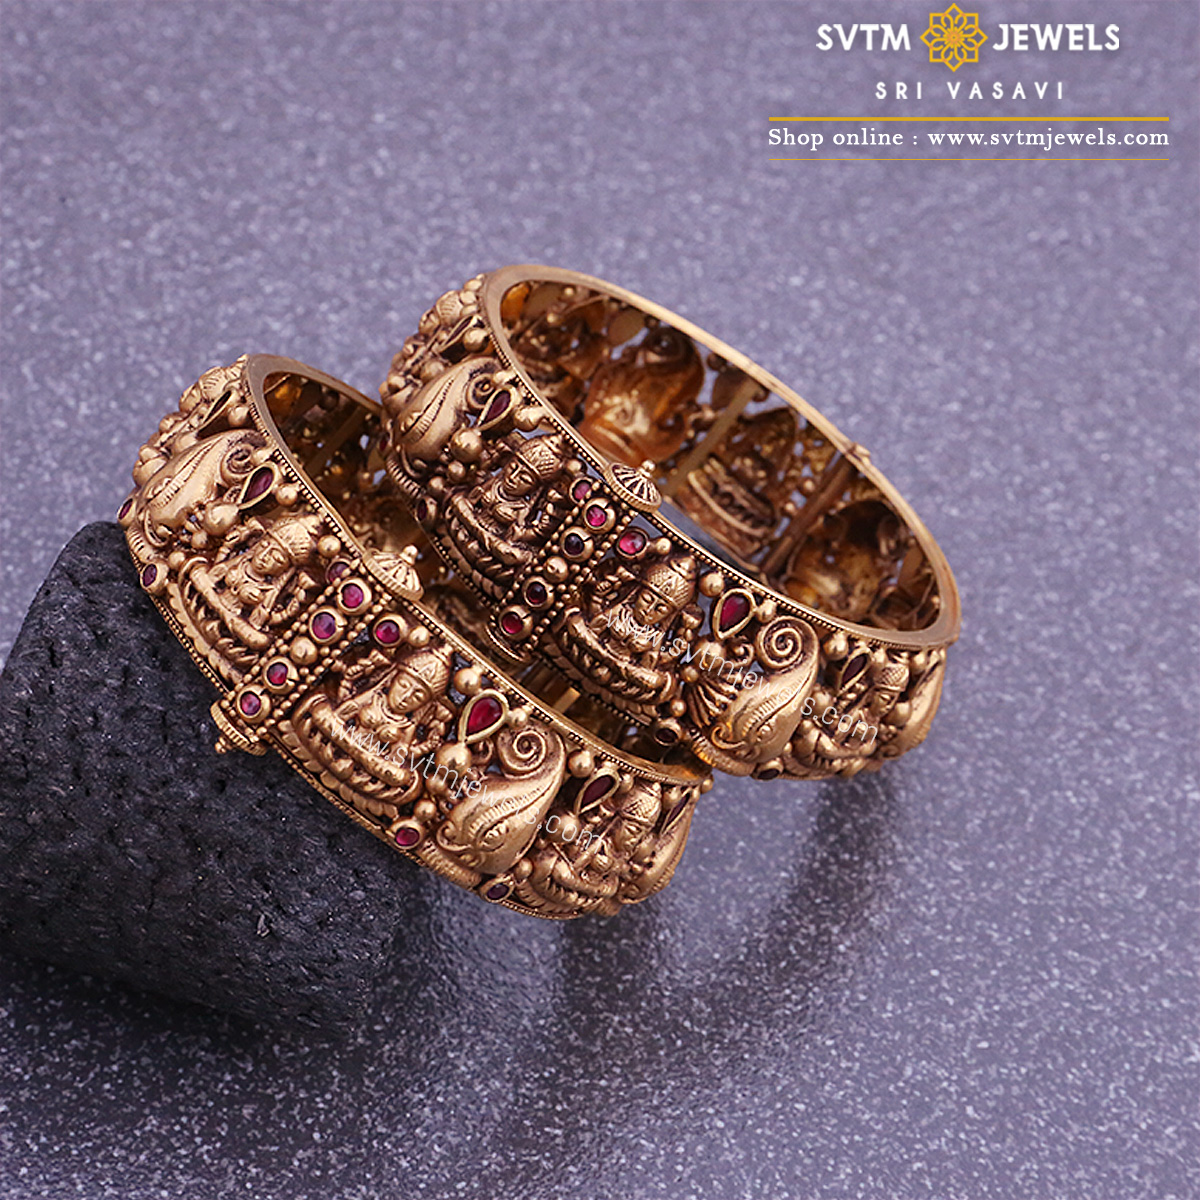 Antique Sudhaayai Bangle